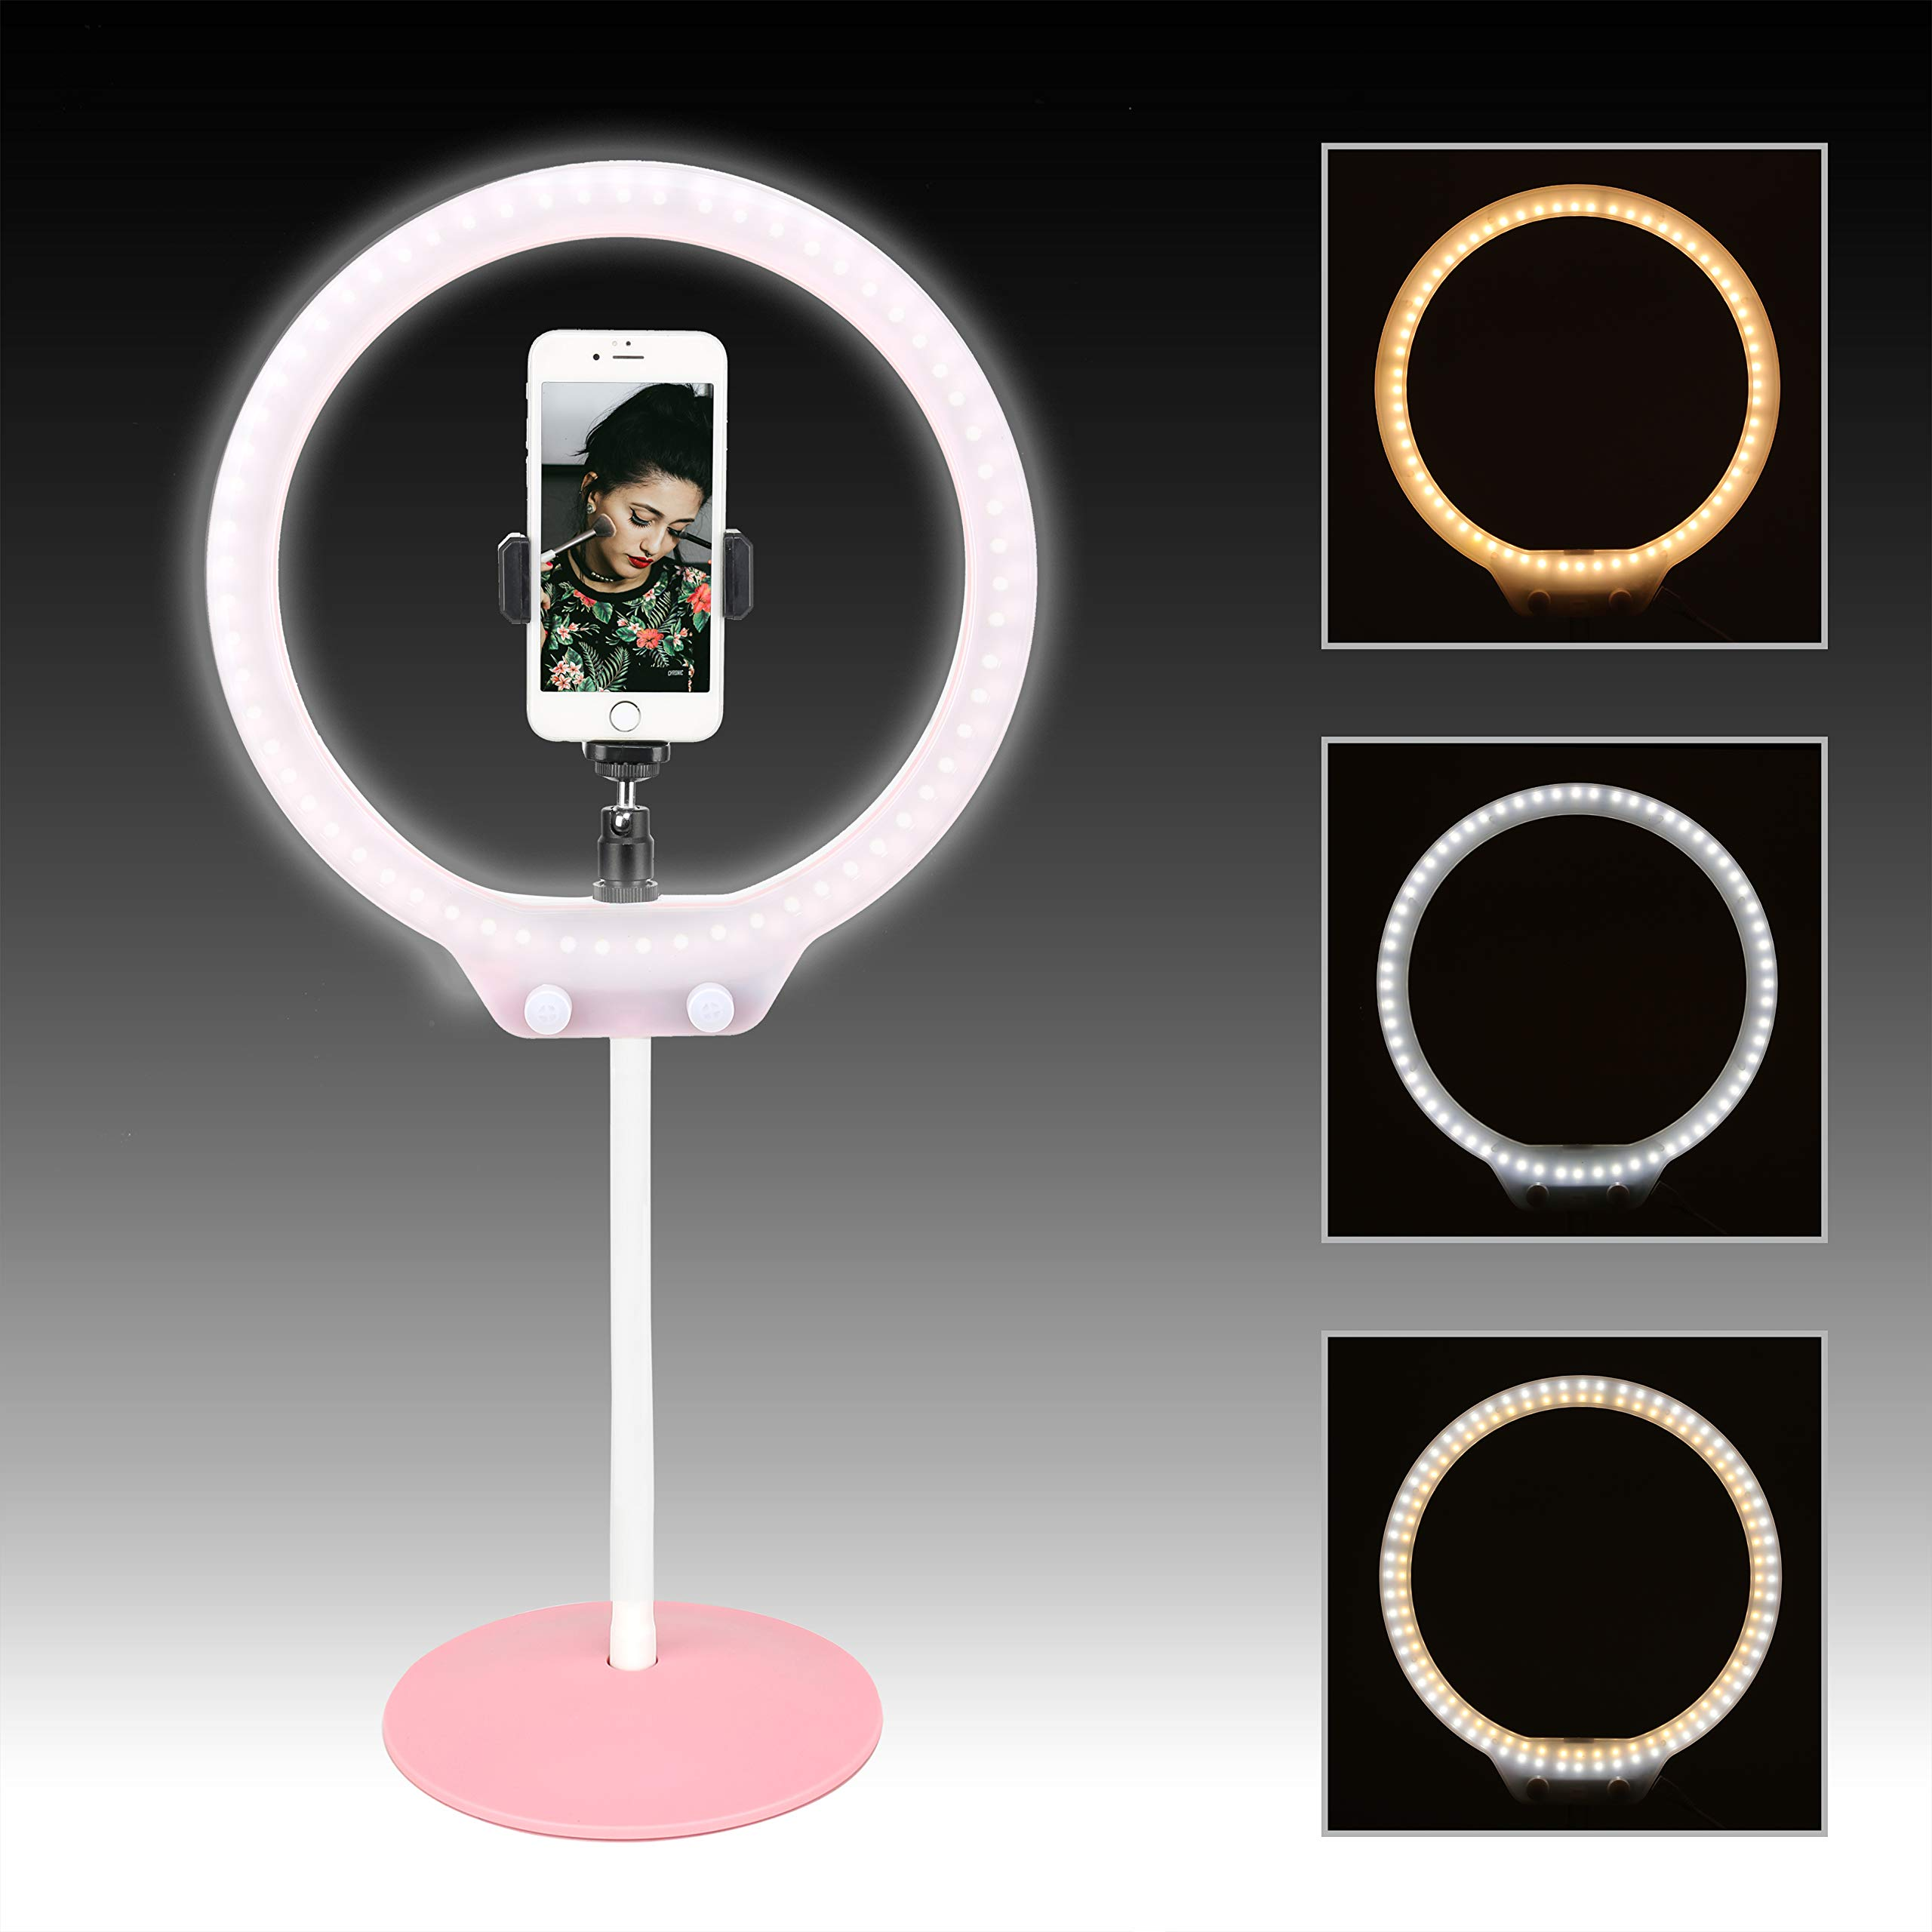 """Zomei 10"""" Table Dimmable Selfie Ring Light with Ball Head, Cell Phone Holder for YouTube Video, Portrait Photography, and Makeup, LED Camera Light,Compatible with iPhone 8 7 6 Plus X Android(Pink)"""